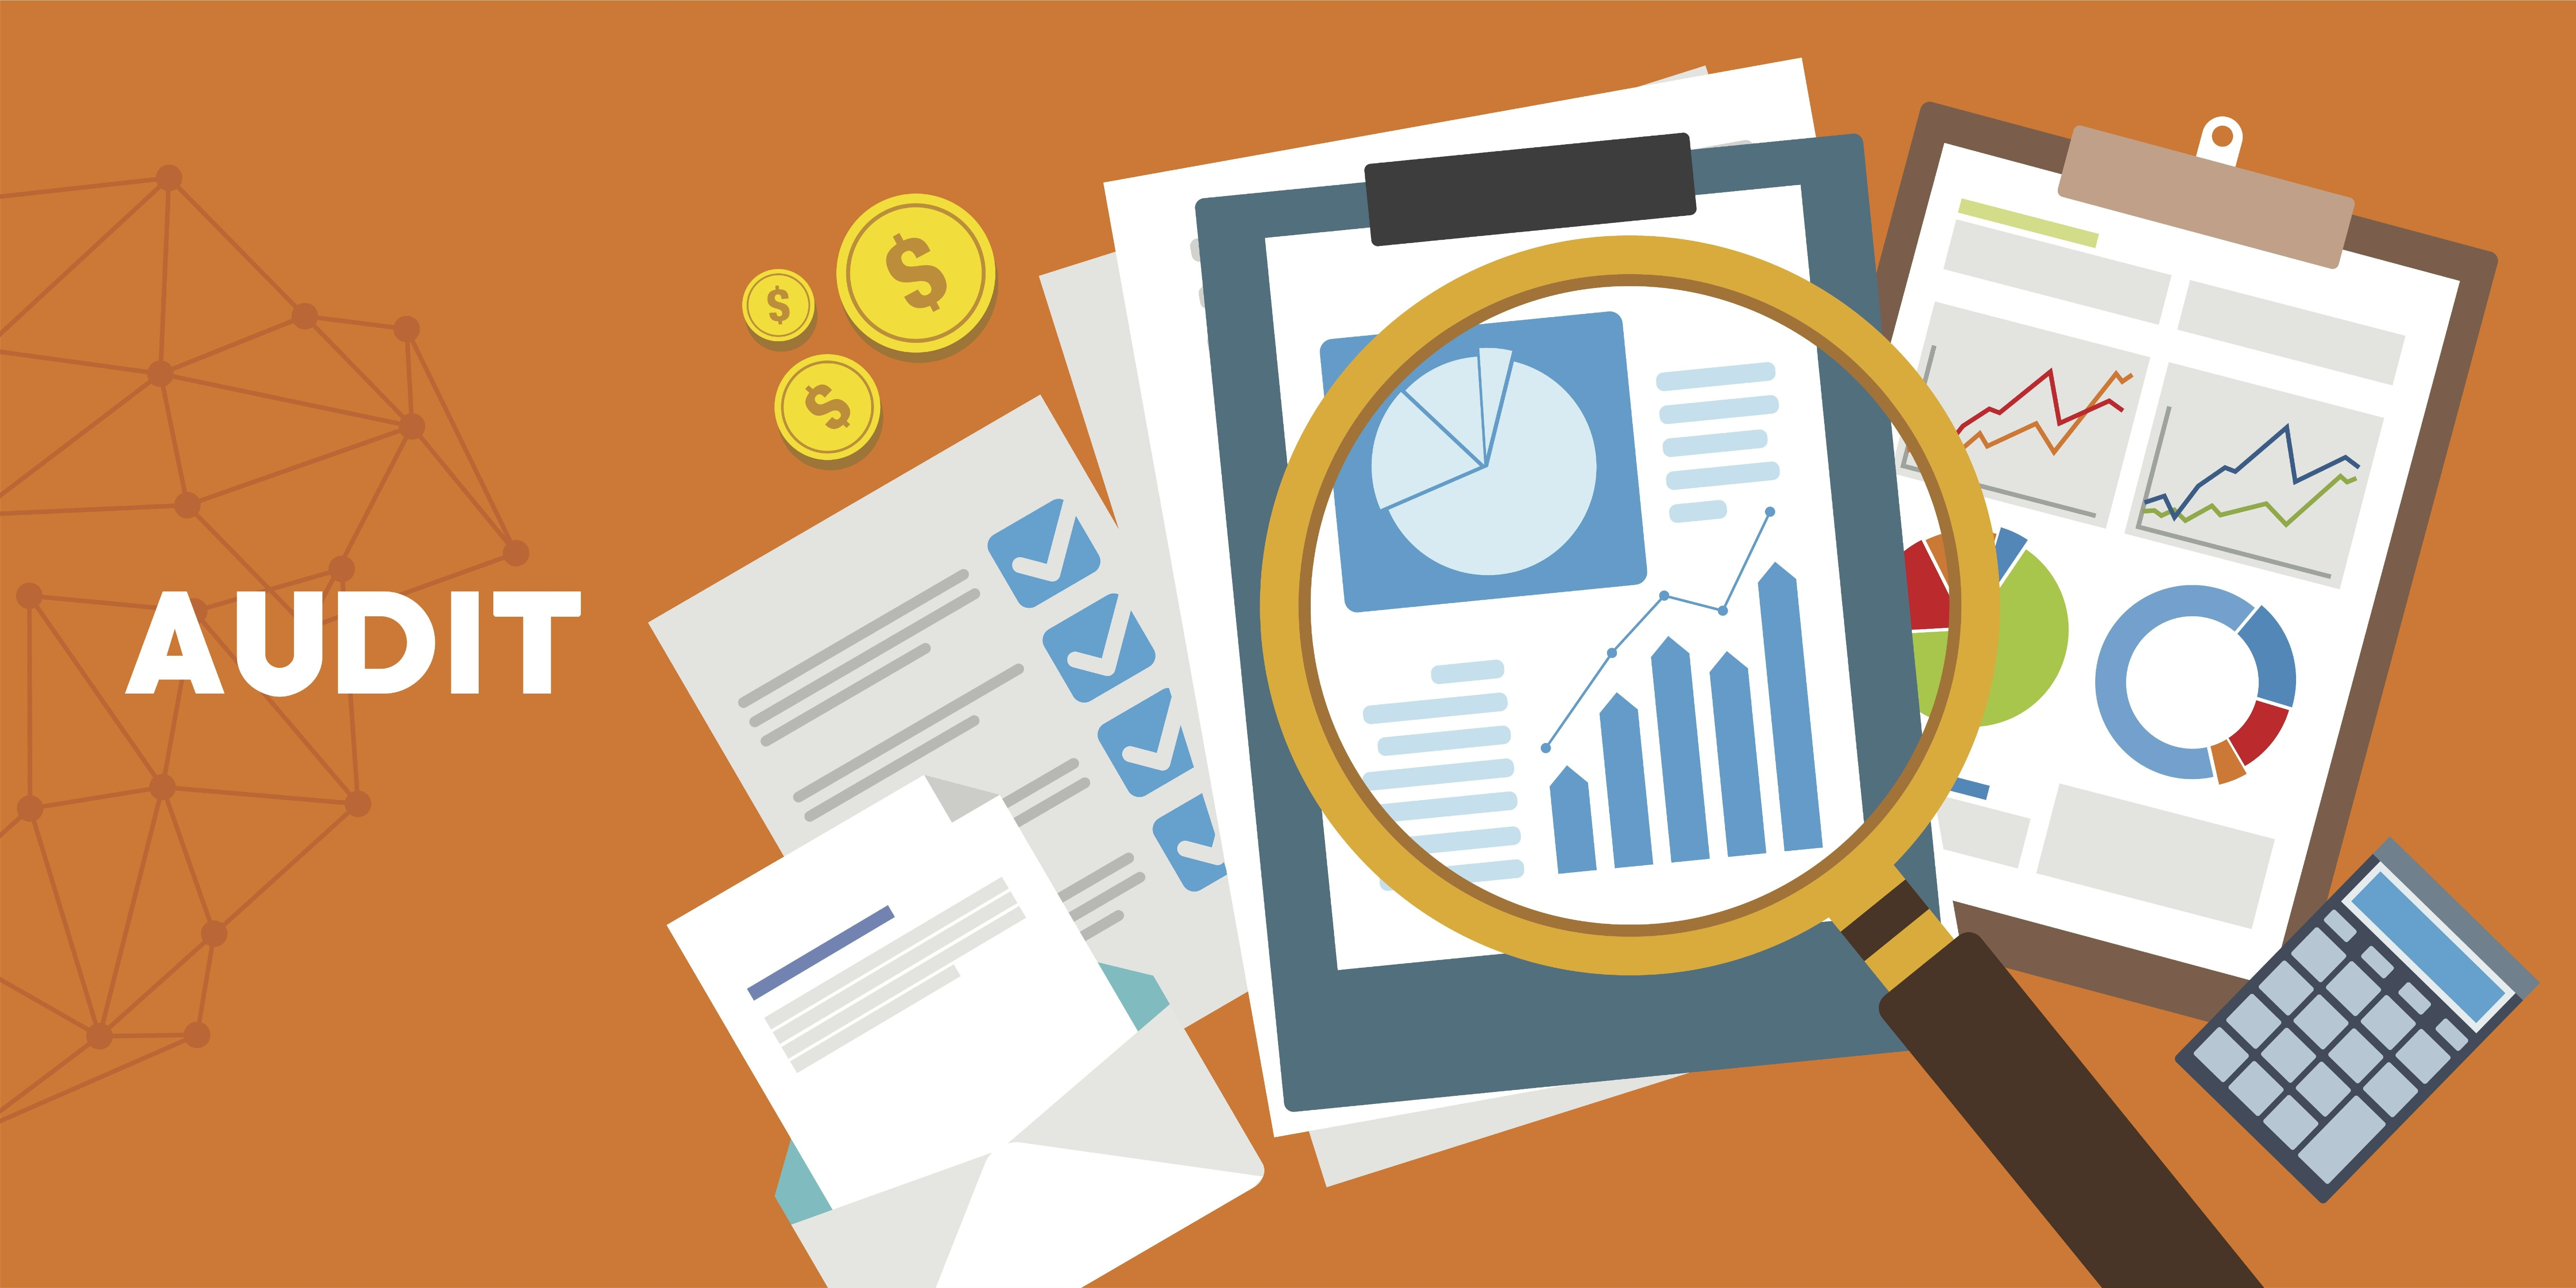 4 Site Audits Your Marketing Team Should Be Running Every Quarter